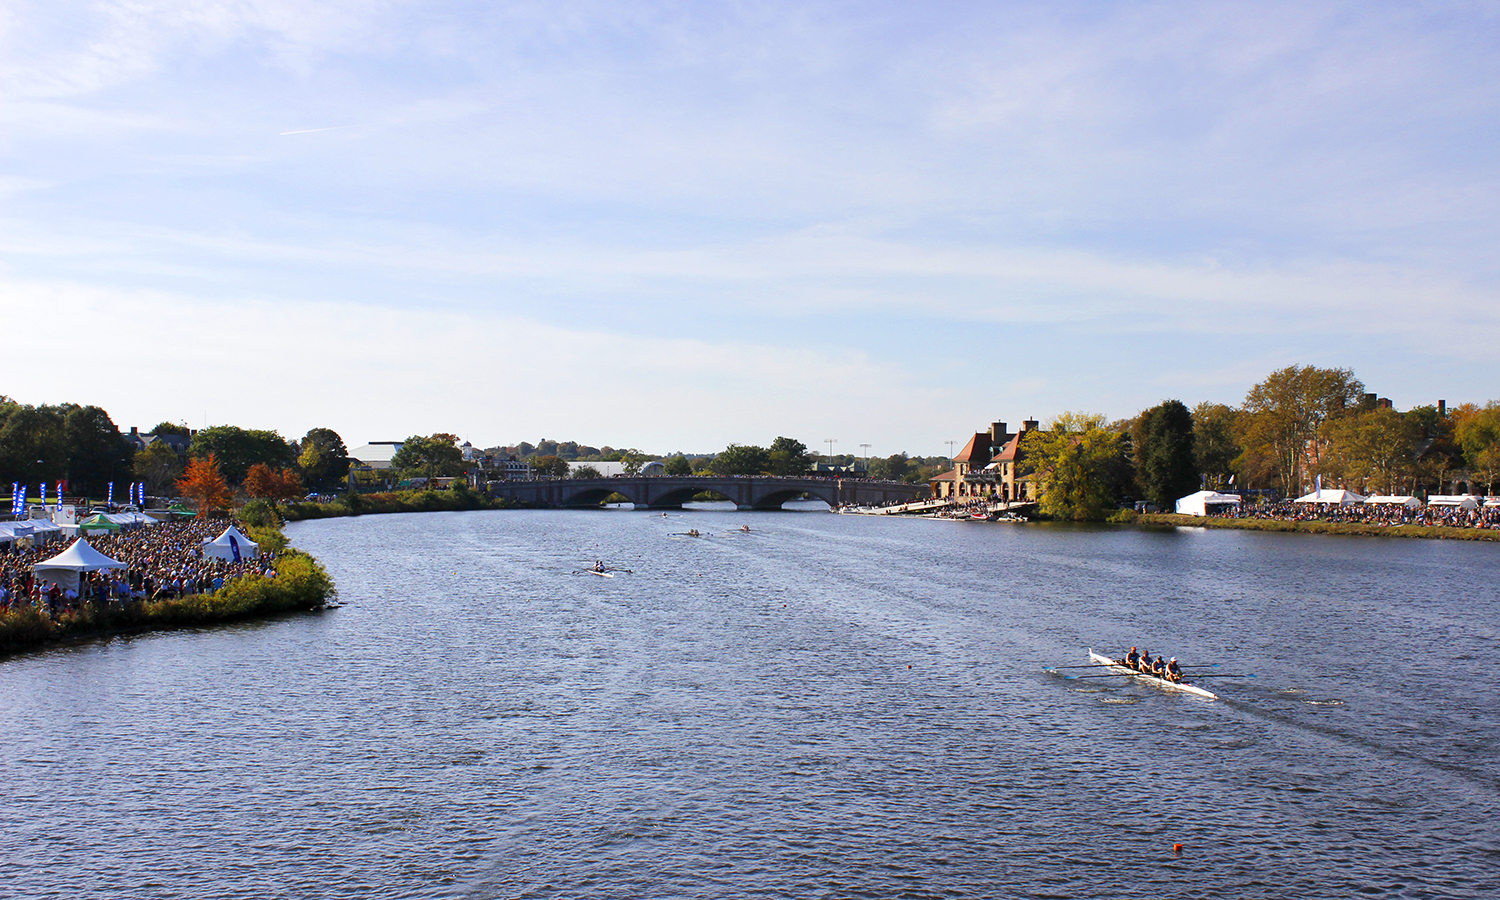 A view of the Head of the Charles Regatta from above.  The Hobart College varsity eight was named the Liberty League Men's Rowing Boat of the Week following a 12th place finish in the men's collegiate eights event on Sunday.